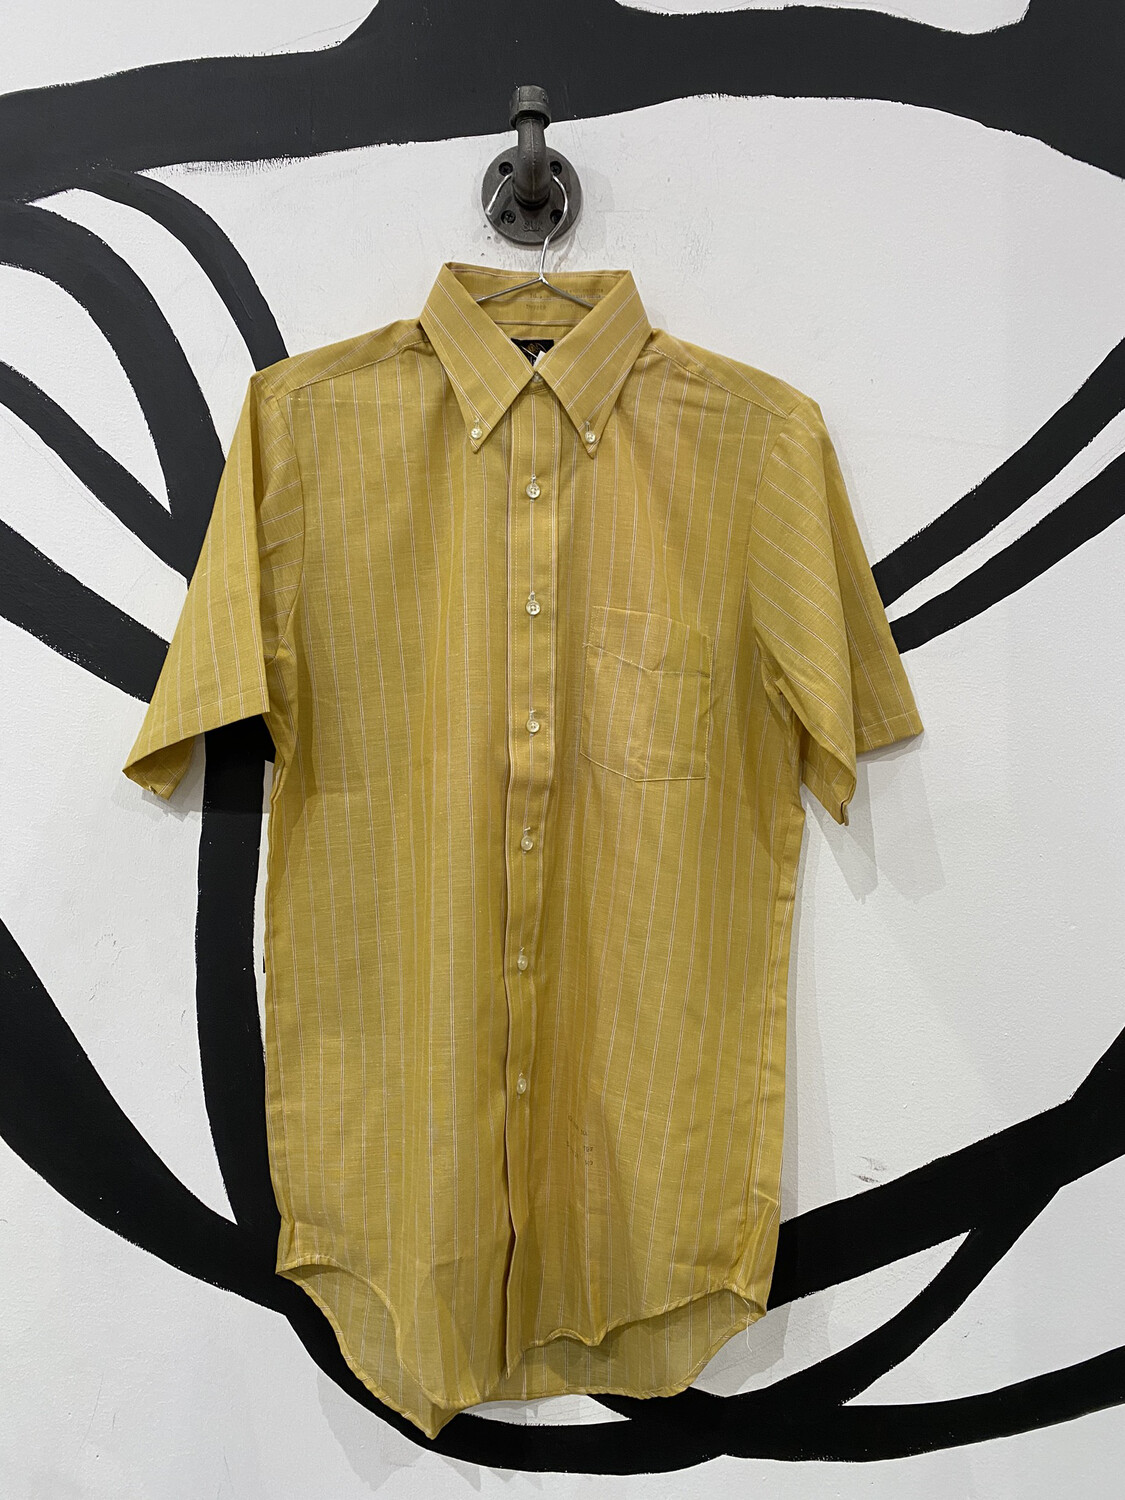 Lightweight Striped Button Up - Men's S